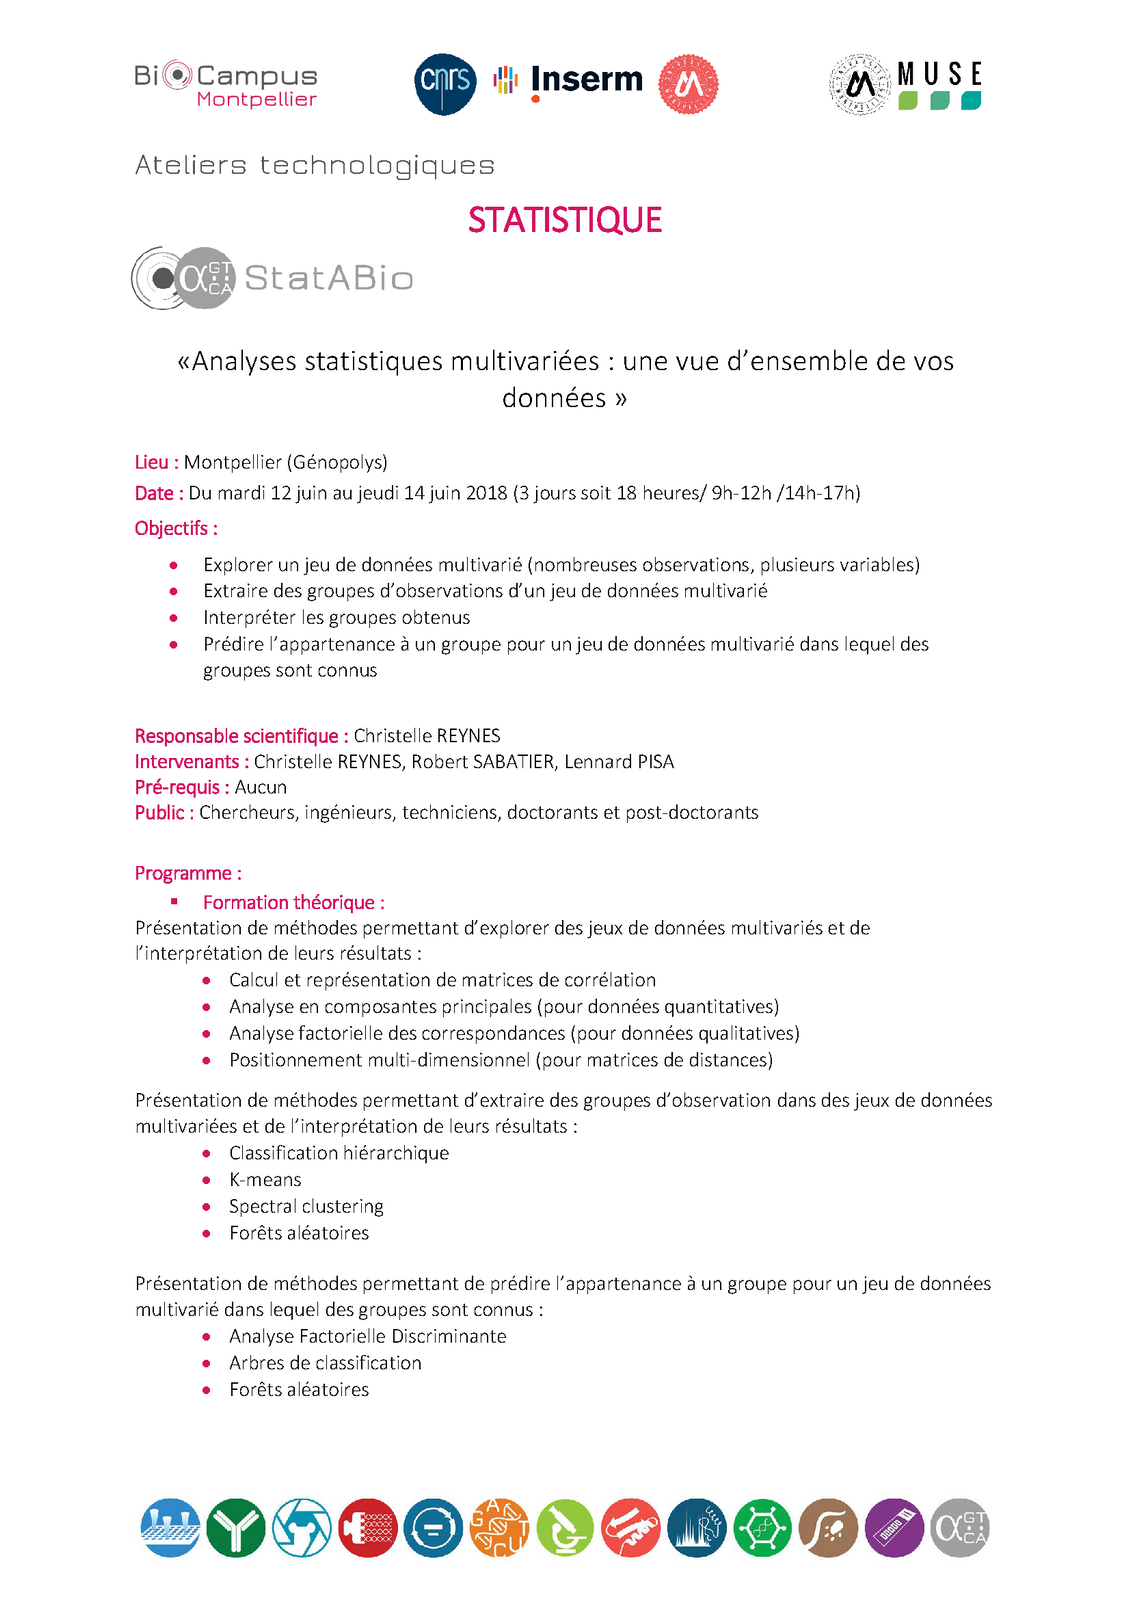 fiche programme analyses stats multivariees Page 1